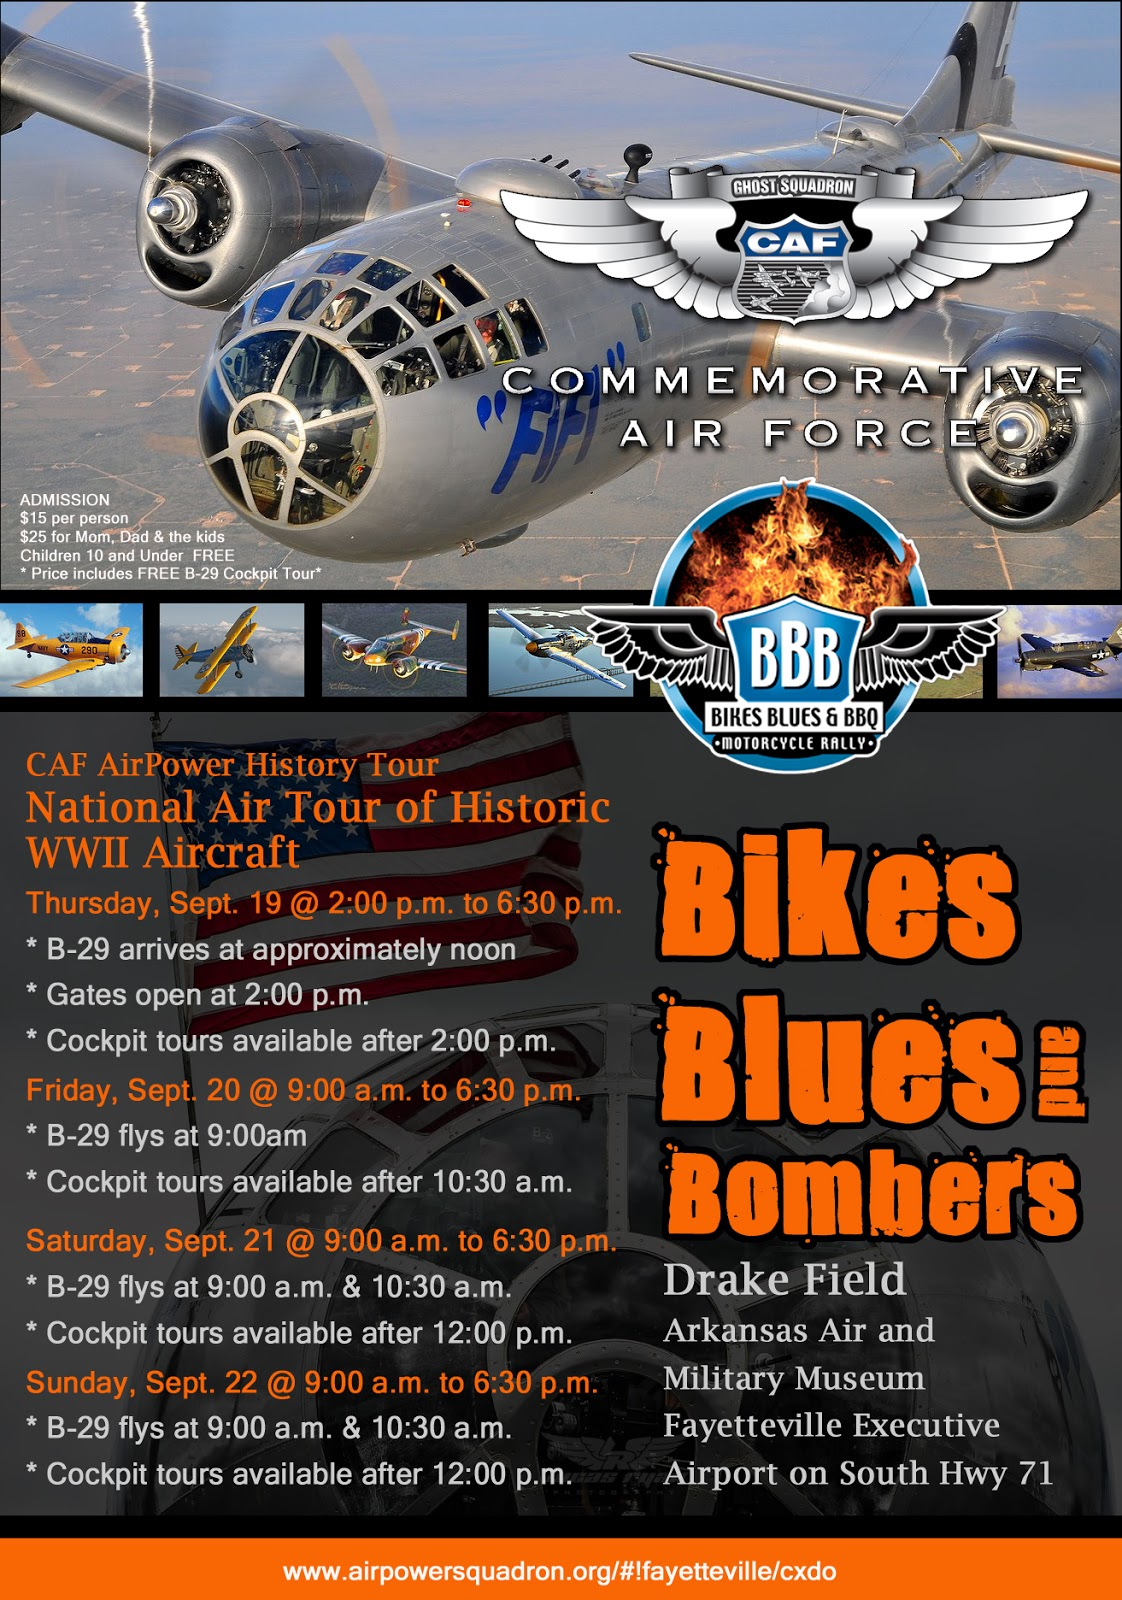 Bikes Blues And Bombers Bikes Blues and Bombers